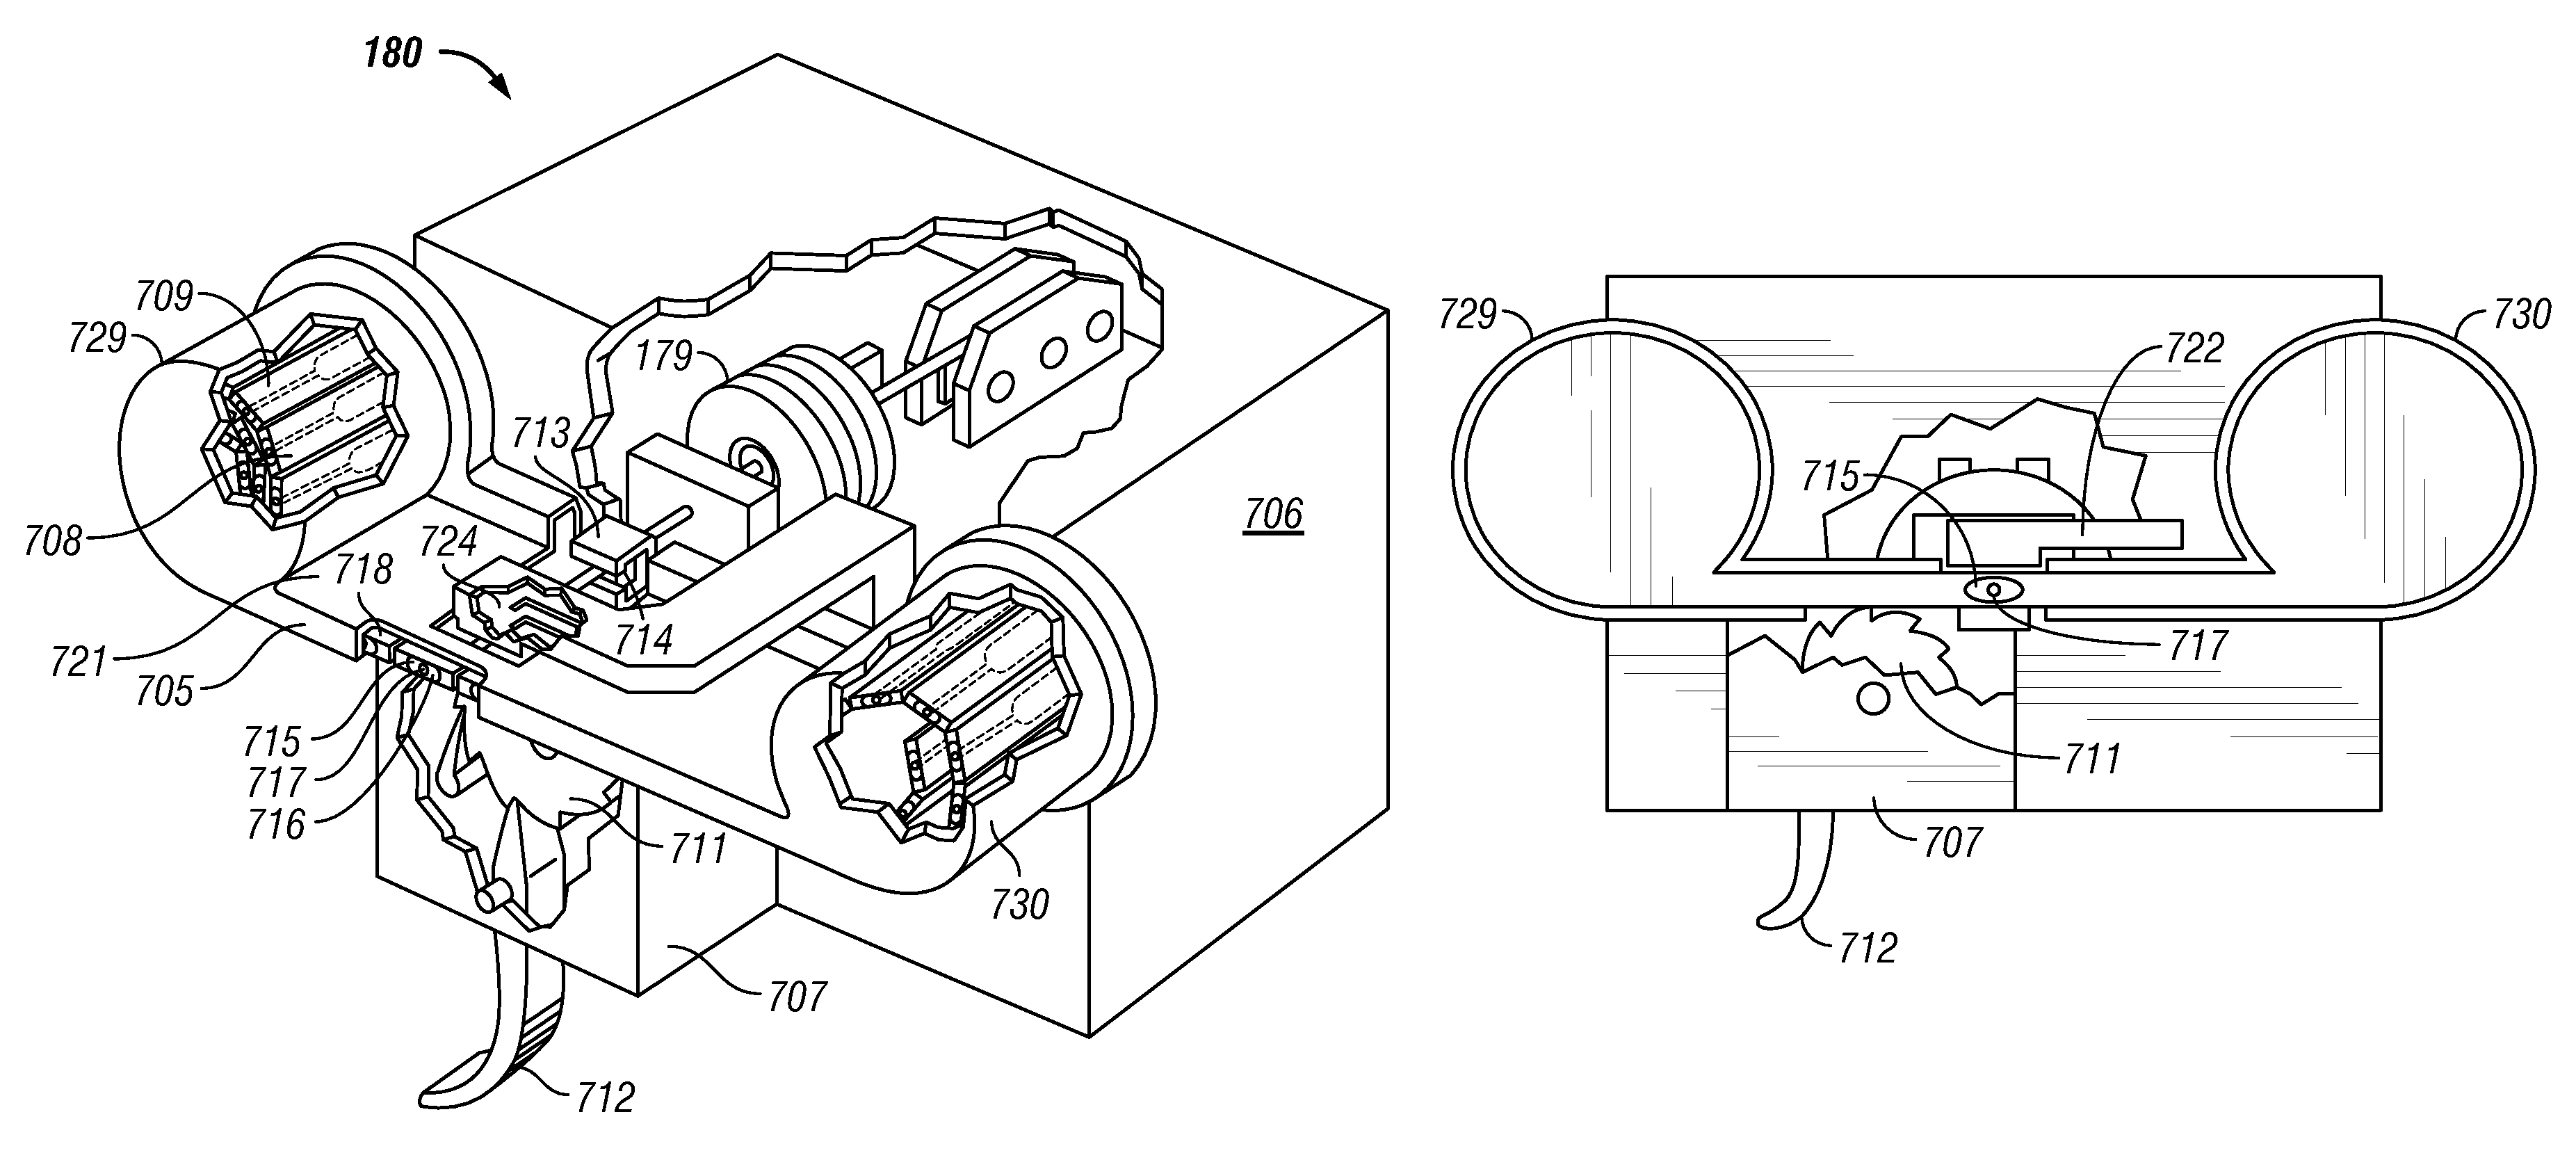 Us8679033b2 Tissue Penetration Device Google Patents Edelbrock 1721 Fuel Pump